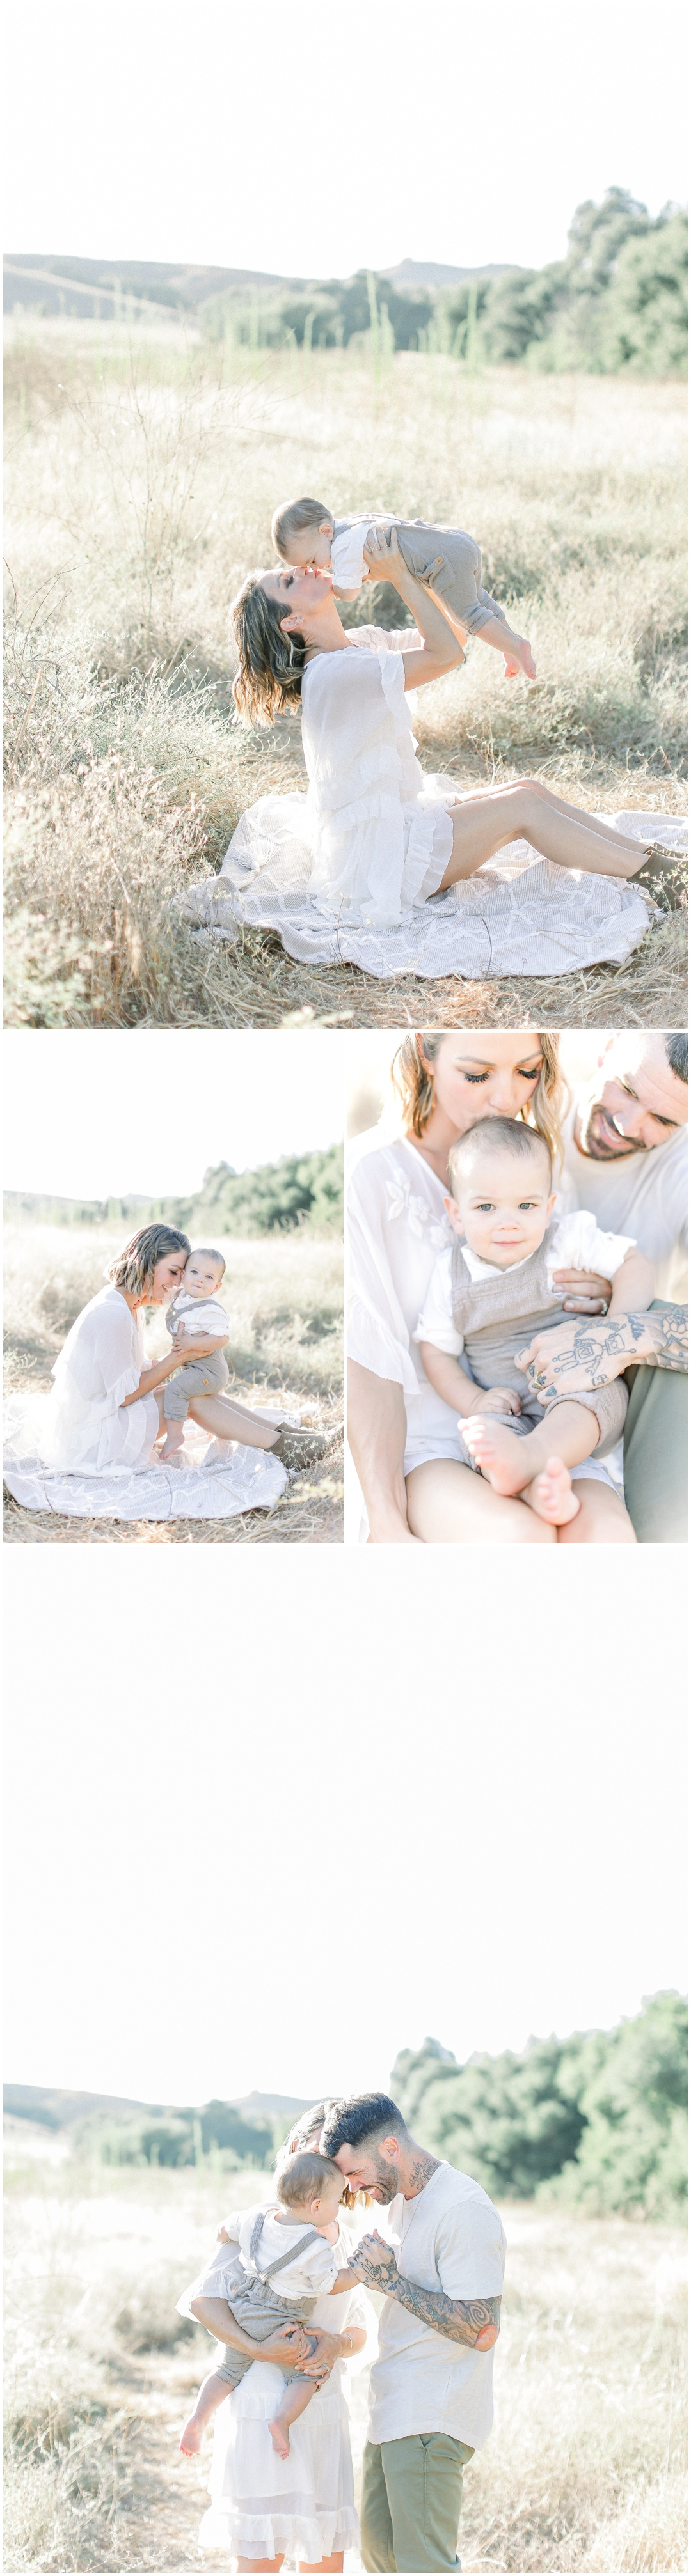 Newport_Beach_Family_Session_Orange_County_Family_Photographer_Thomas_Riley_Wilderness_Park_Carrie_Stotts_Sean_Stotts__4316.jpg